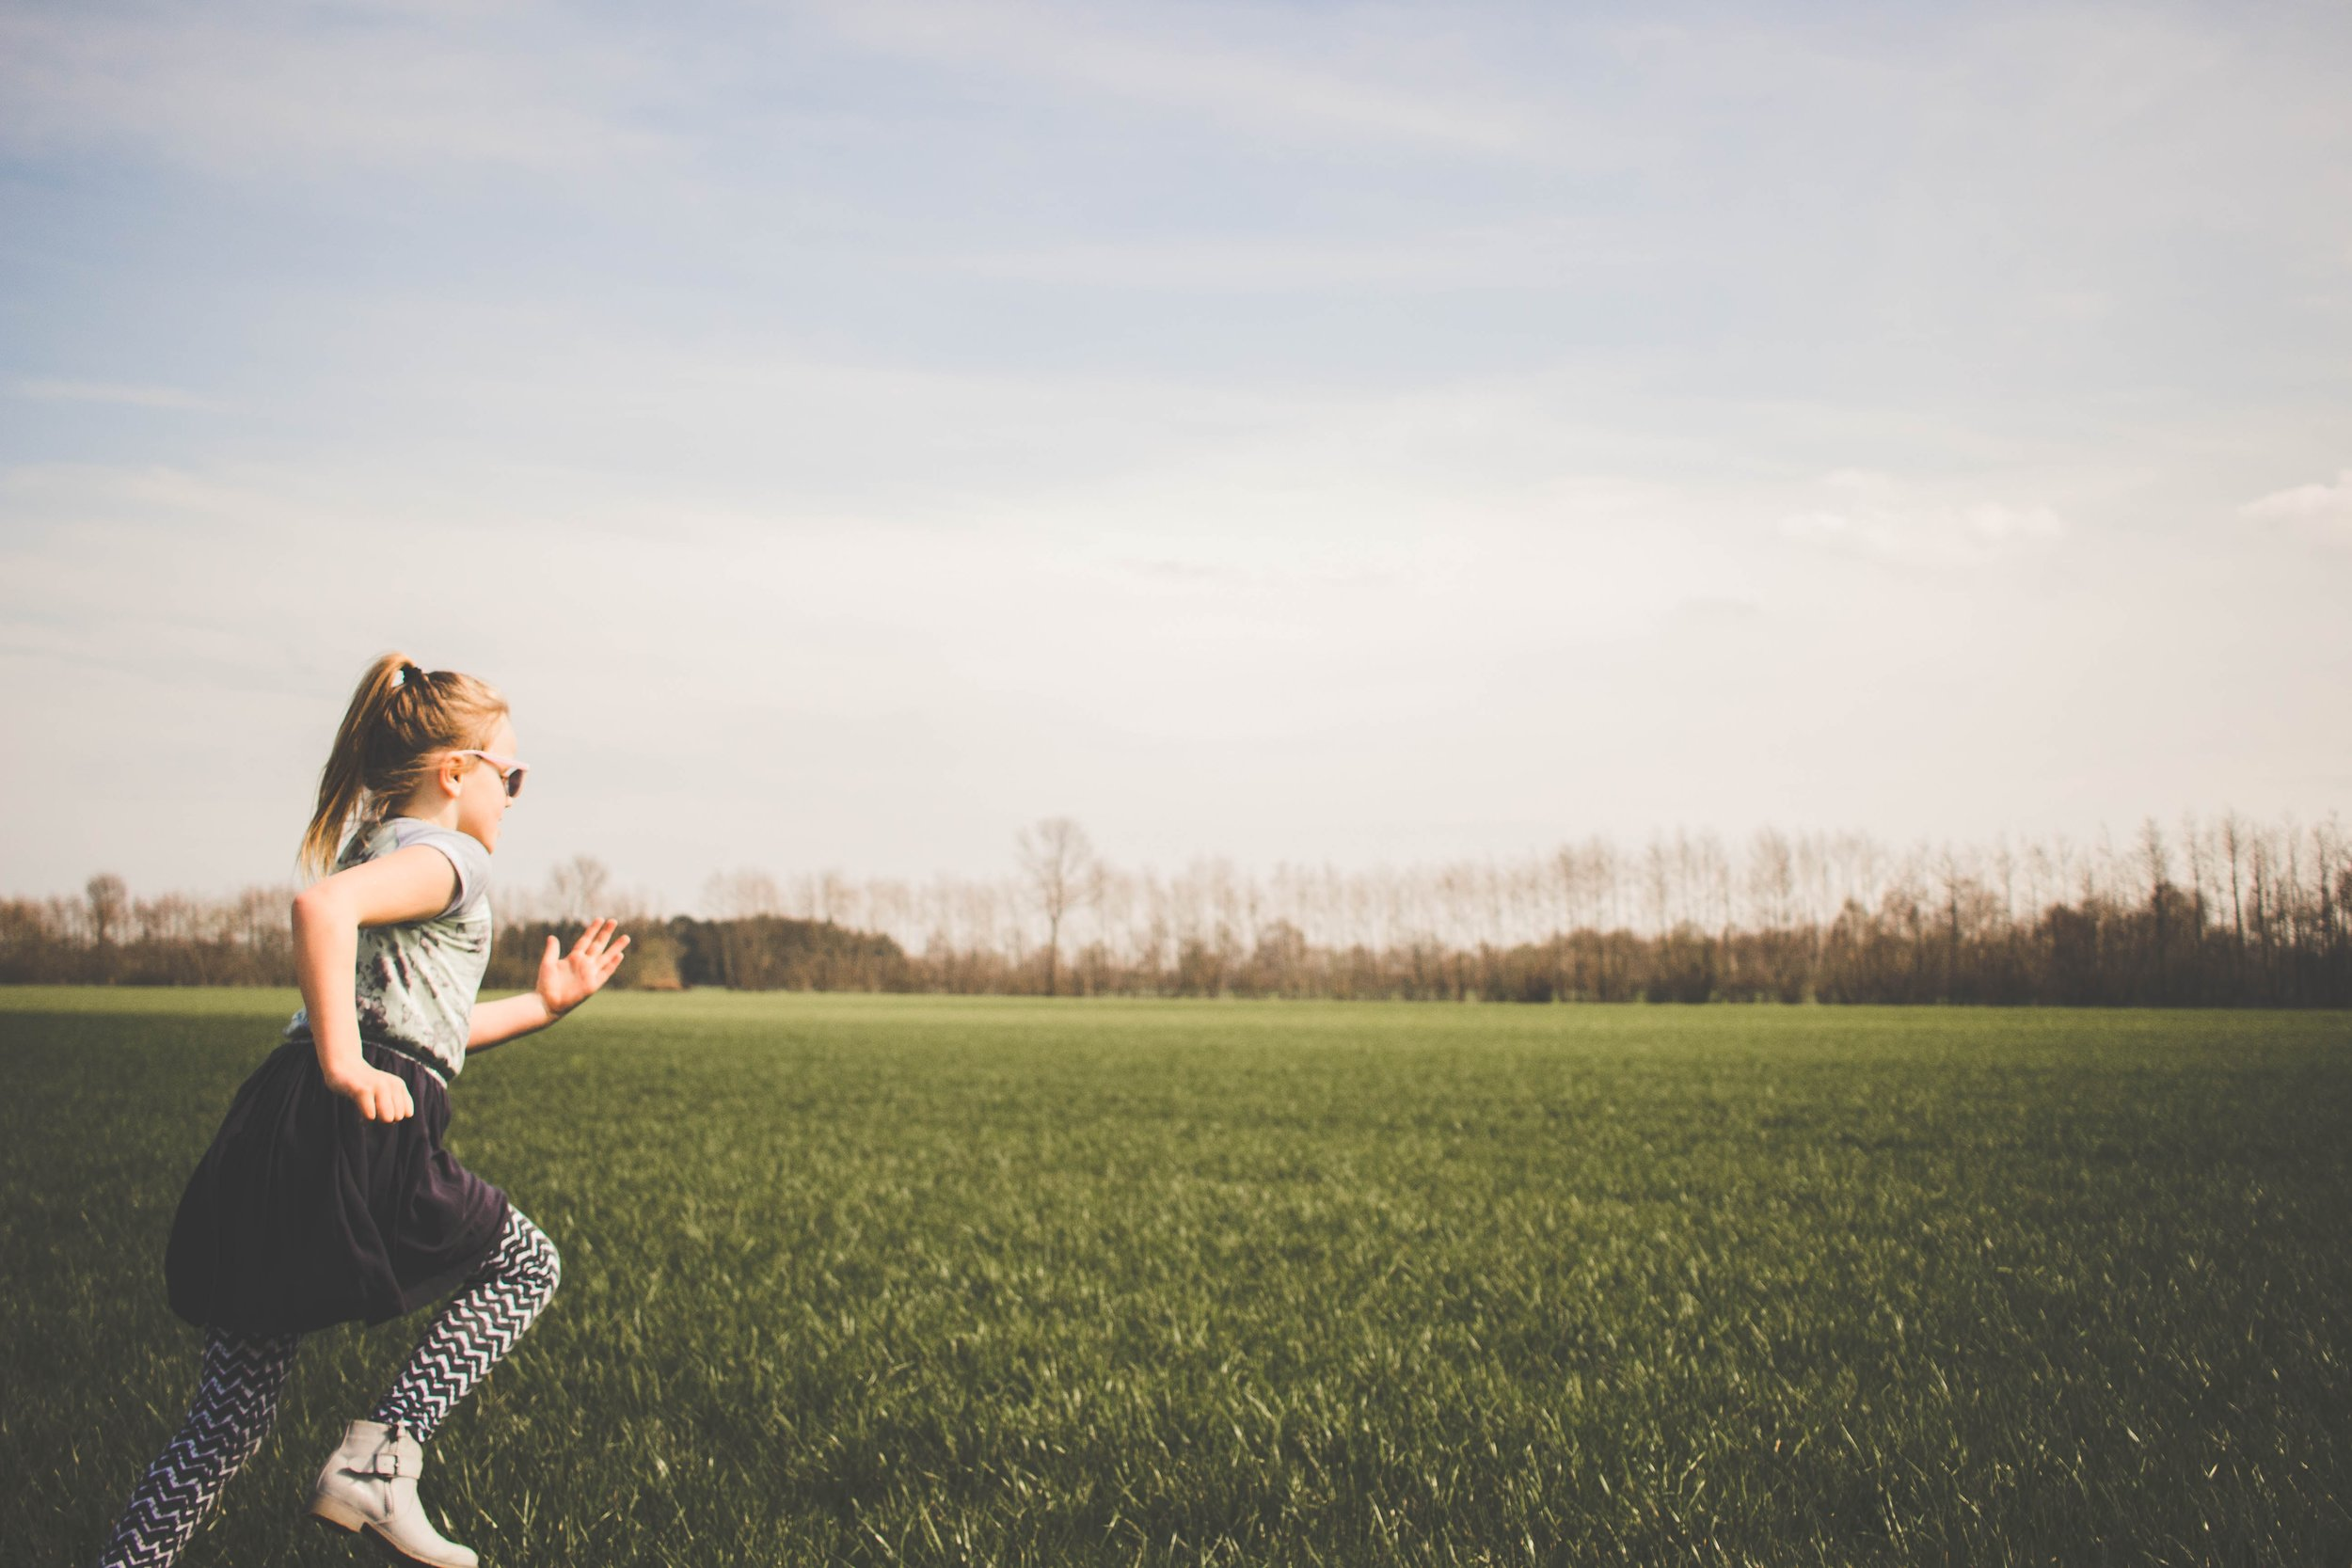 adolescent girl running across grass field